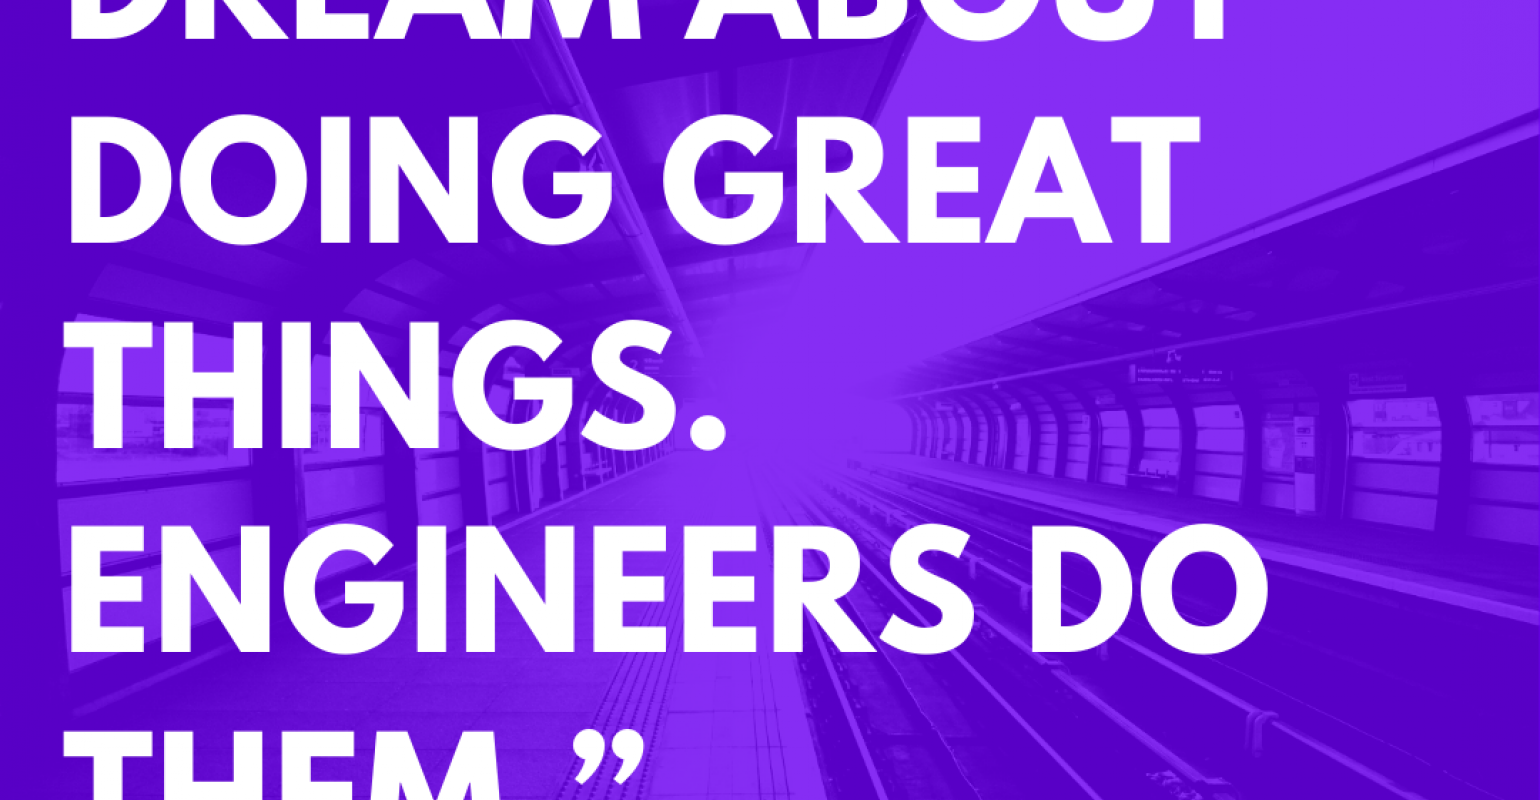 3 Inspirational Quotes For Engineers  designnews.com